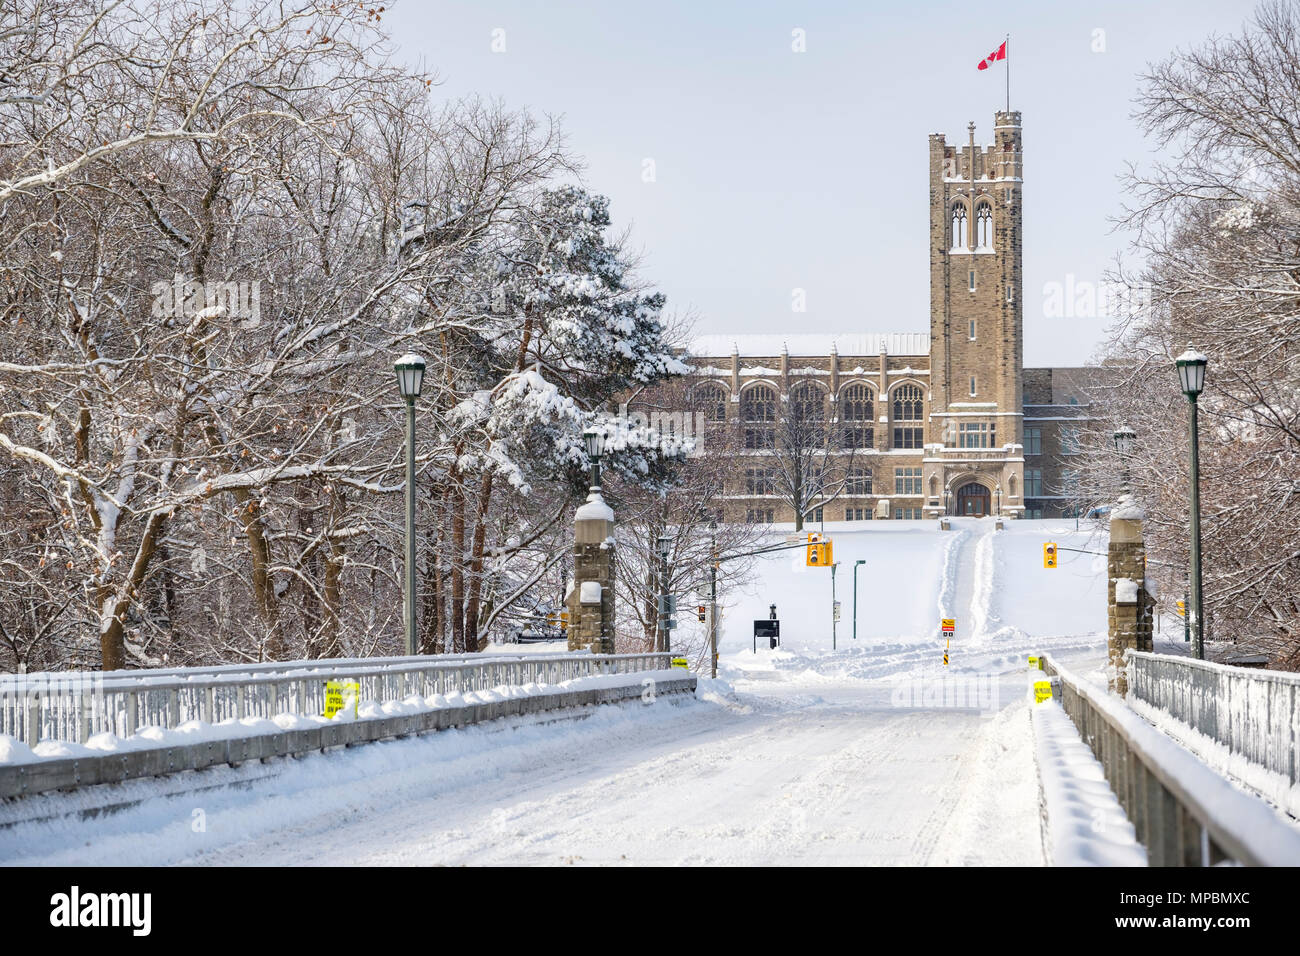 University College Building at Western University after a heavy winter snowfall, London, Ontario, Canada. - Stock Image